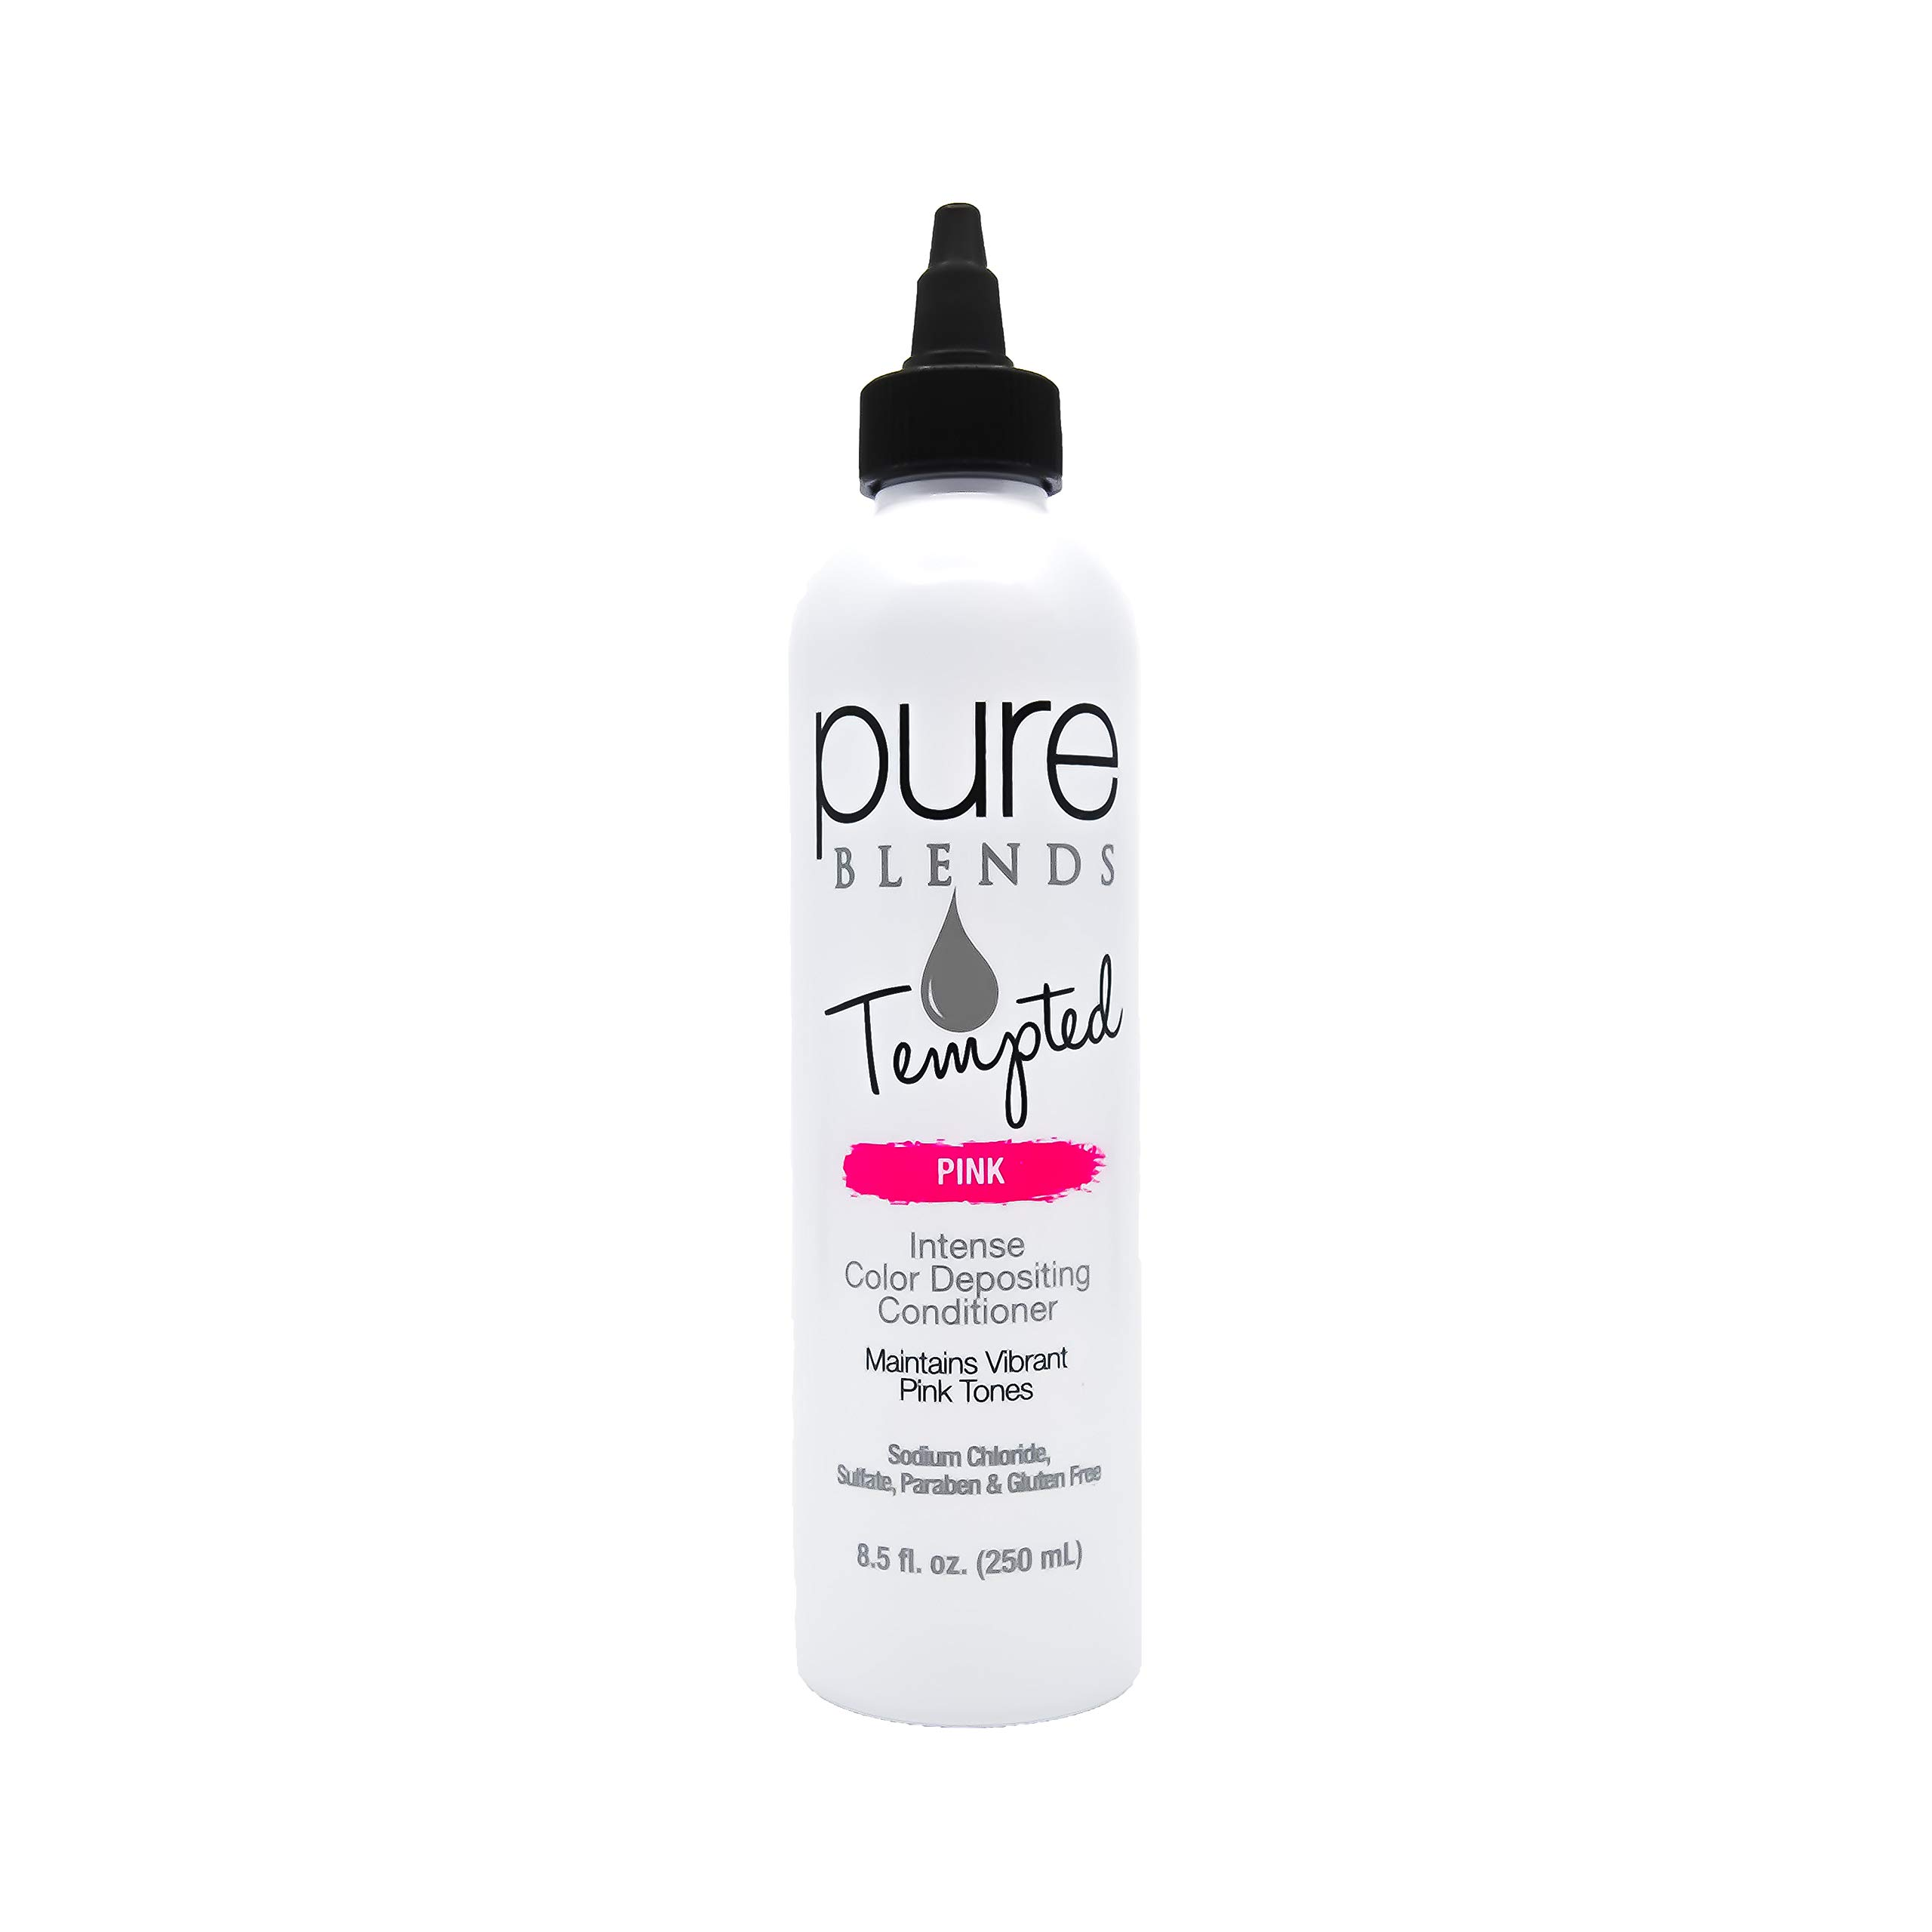 Pure Blends Tempted Intense Color Depositing Conditioner - Pink (Vibrant Pink Tones) 8.5 Ounce - Salon Quality by Pure Blends